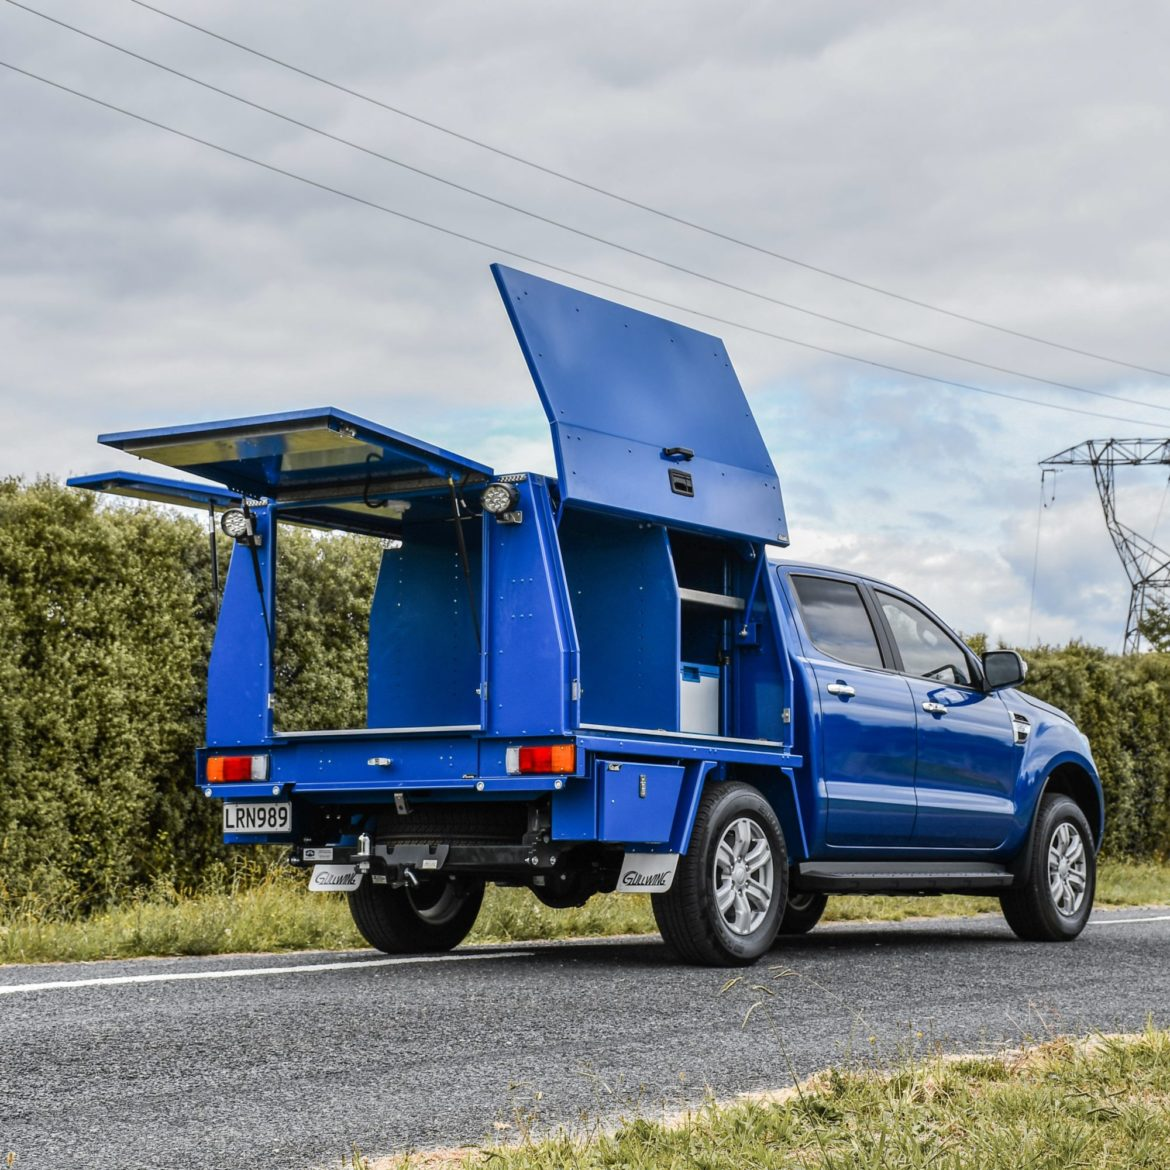 Ford Ranger Service Body